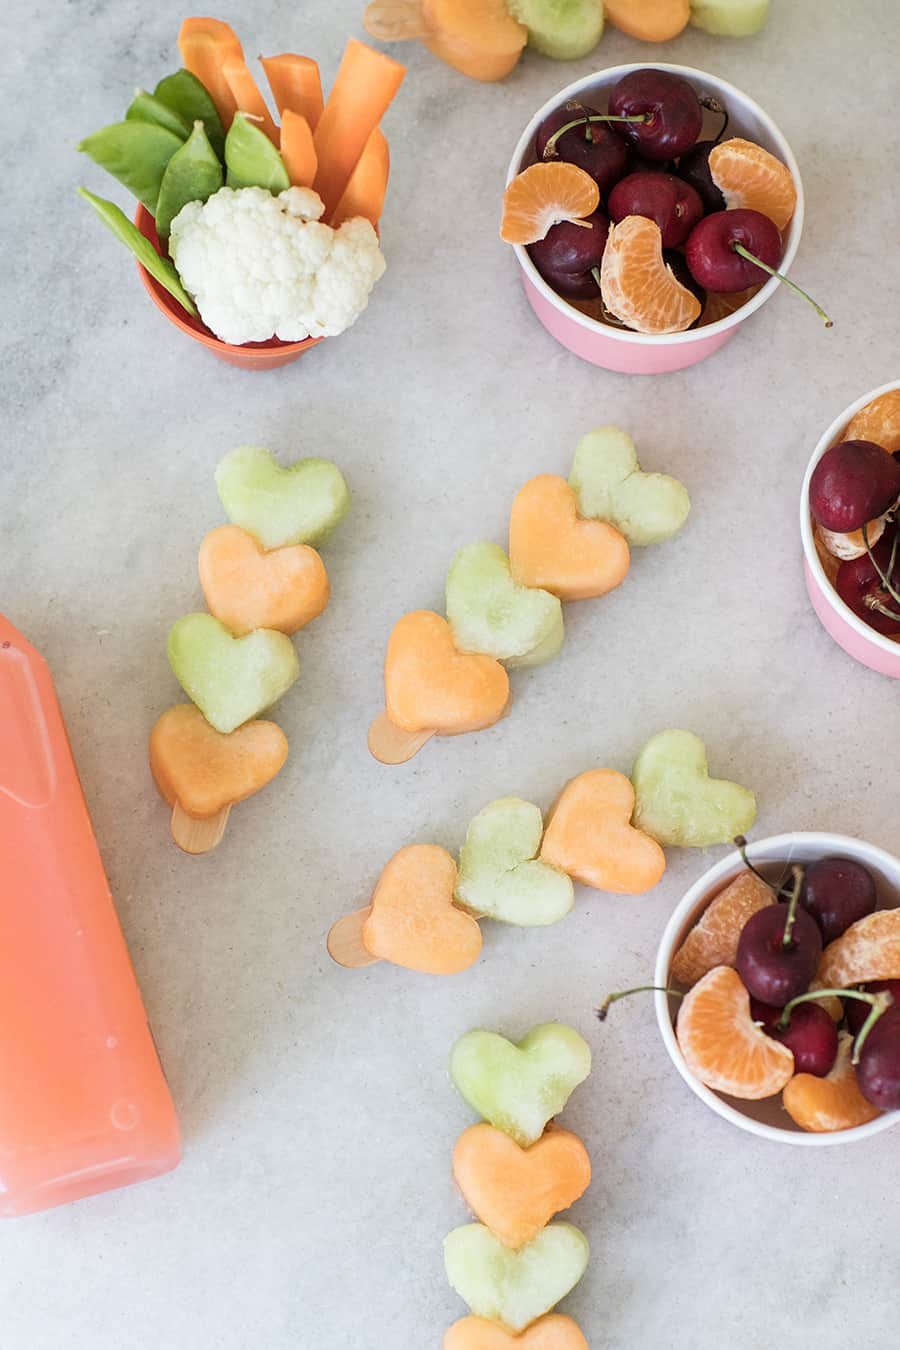 Heart fruit kabobs on a popsicle stick with a bowl of cherries and orange slices.